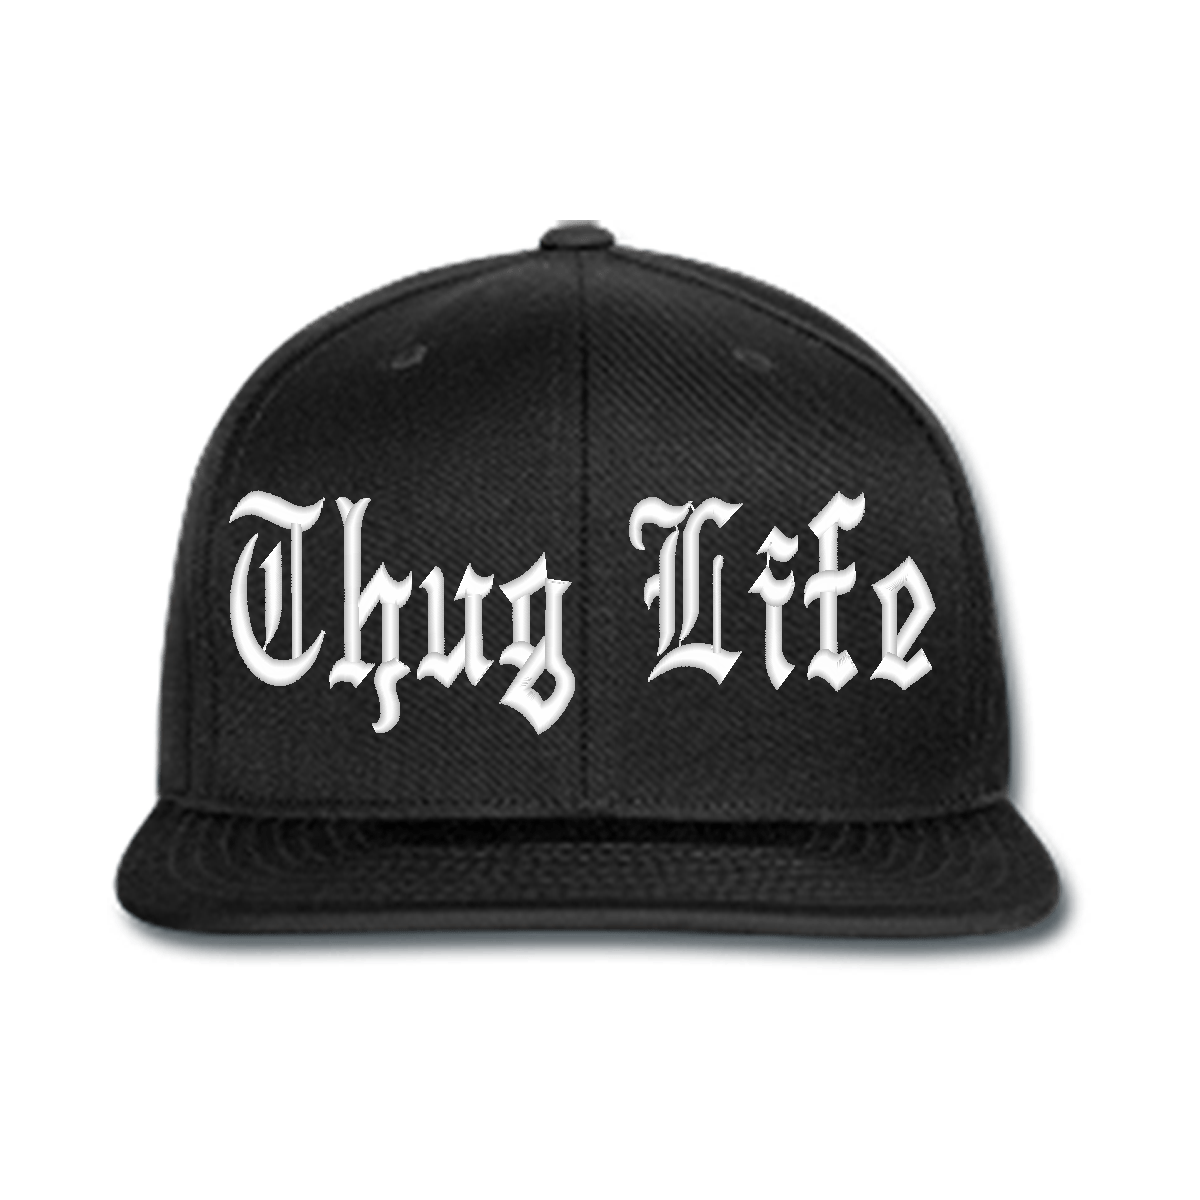 Mlg obey hat png. Thug life black transparent